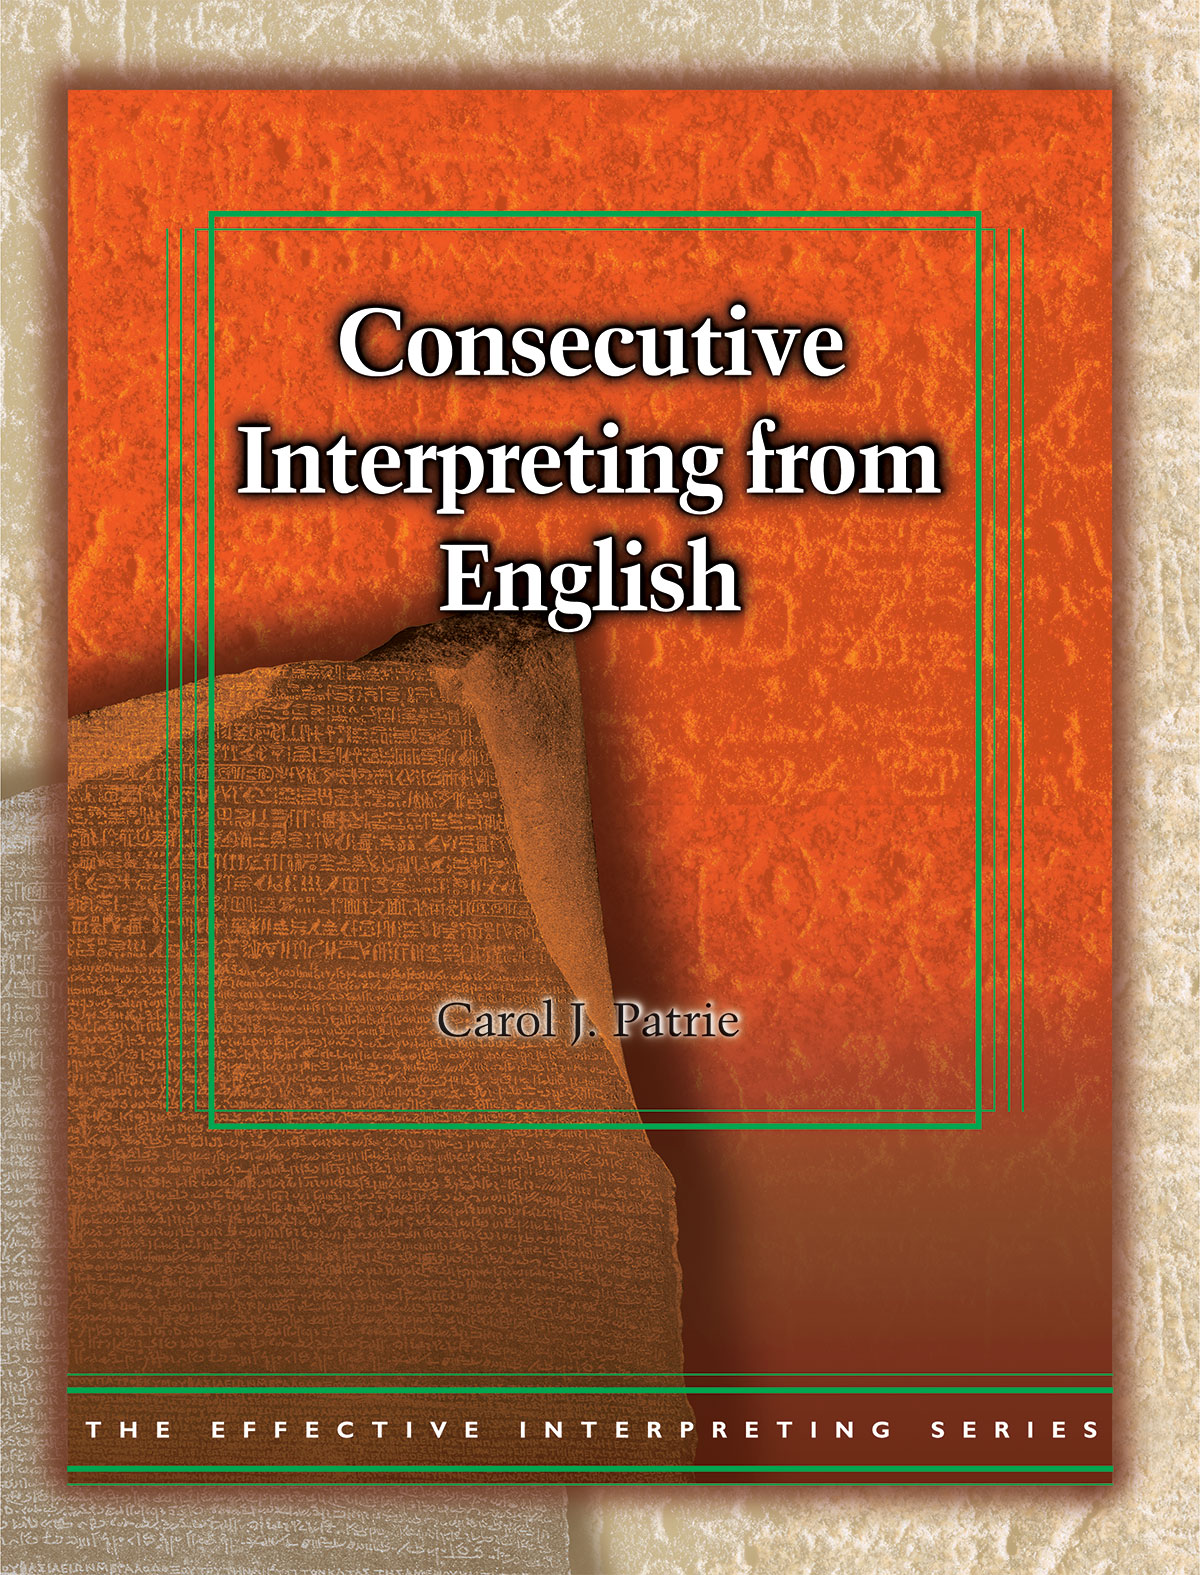 The Effective Interpreting Series: Consecutive Interpreting from English - Study Set